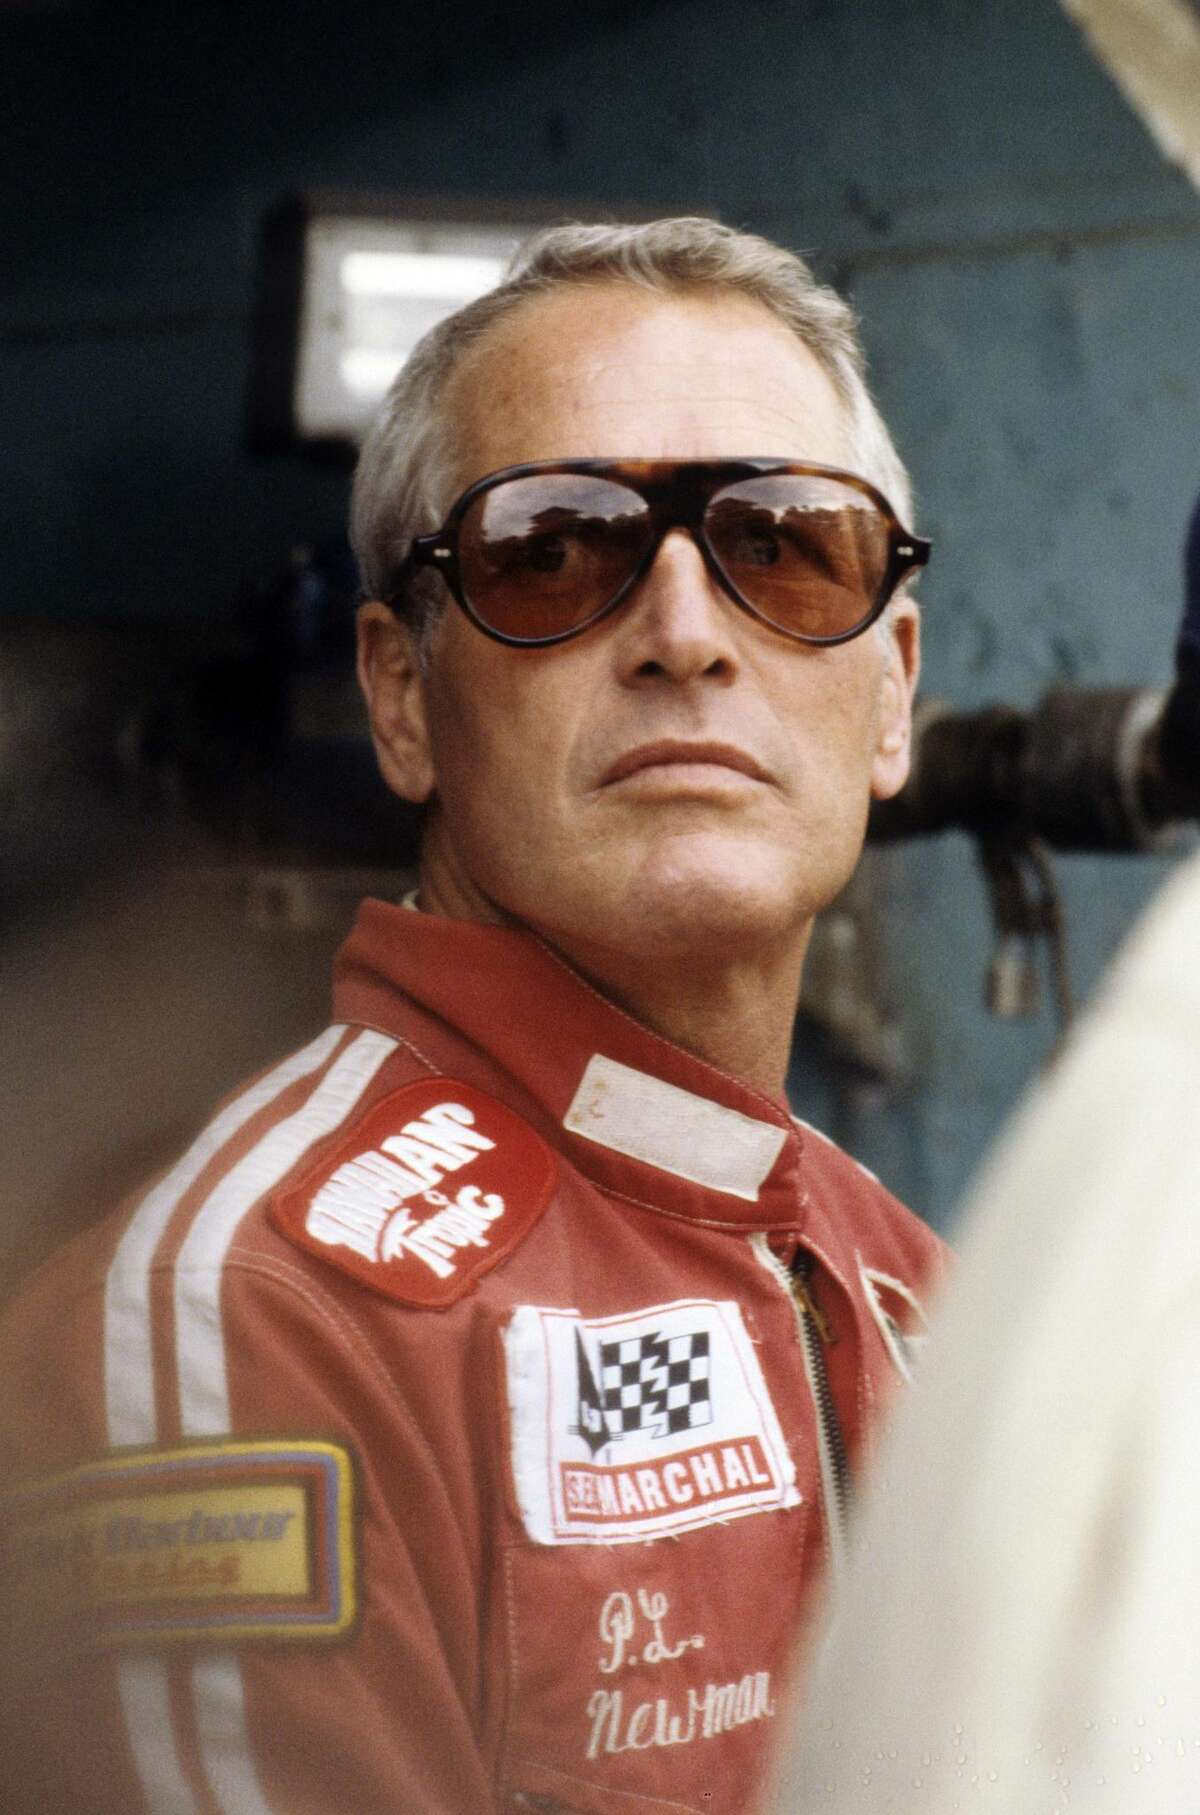 Paul Newman attends the 24hr Grand Prix, circa 1979 in Le Mans, France.